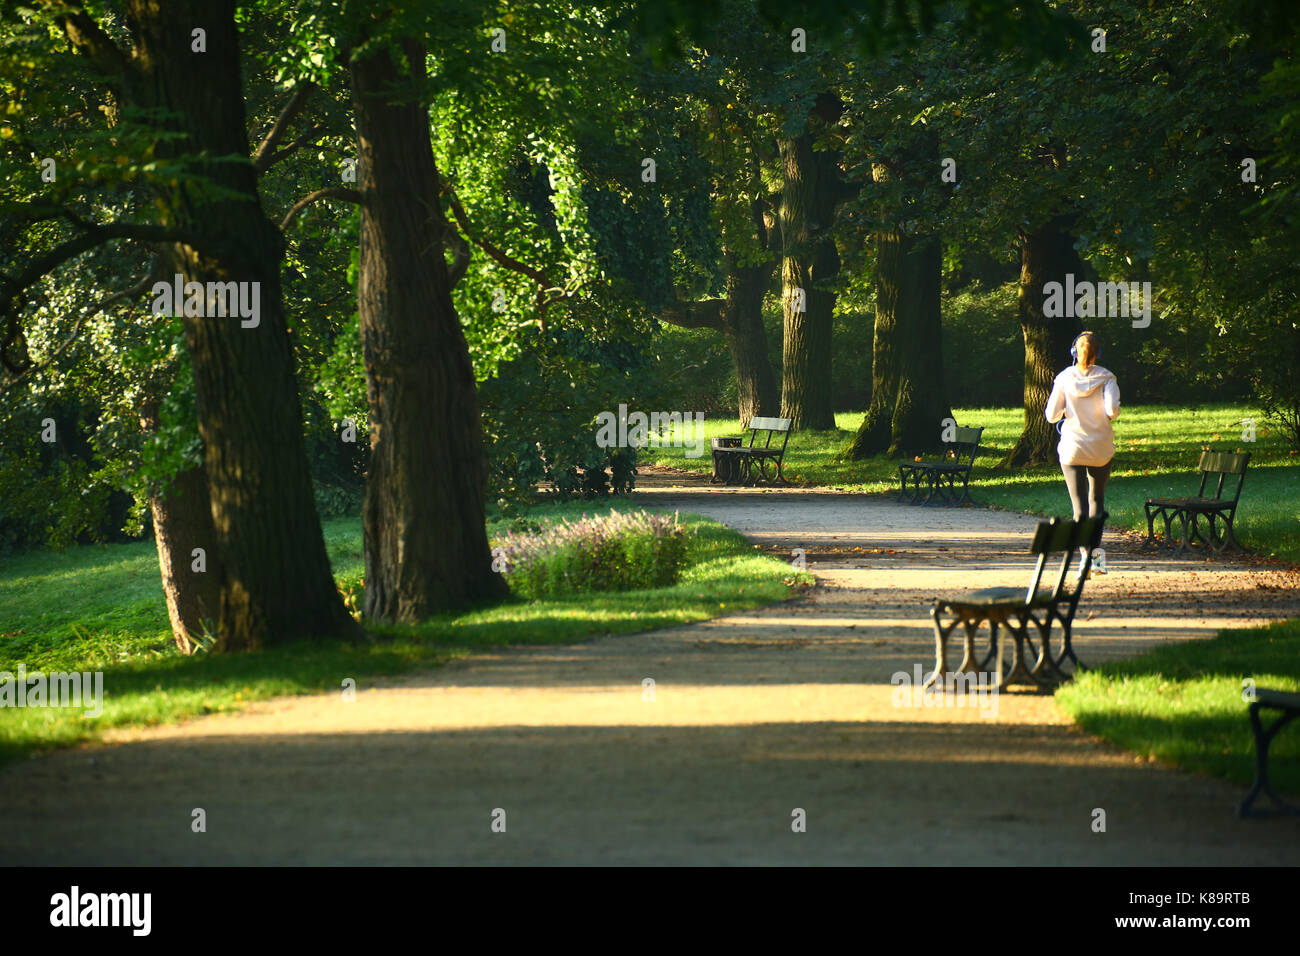 Warsaw, Poland. 19th Sep, 2017. Cold sunny morning at Lazienki Park. Credit: Madeleine Ratz/Alamy Live News - Stock Image